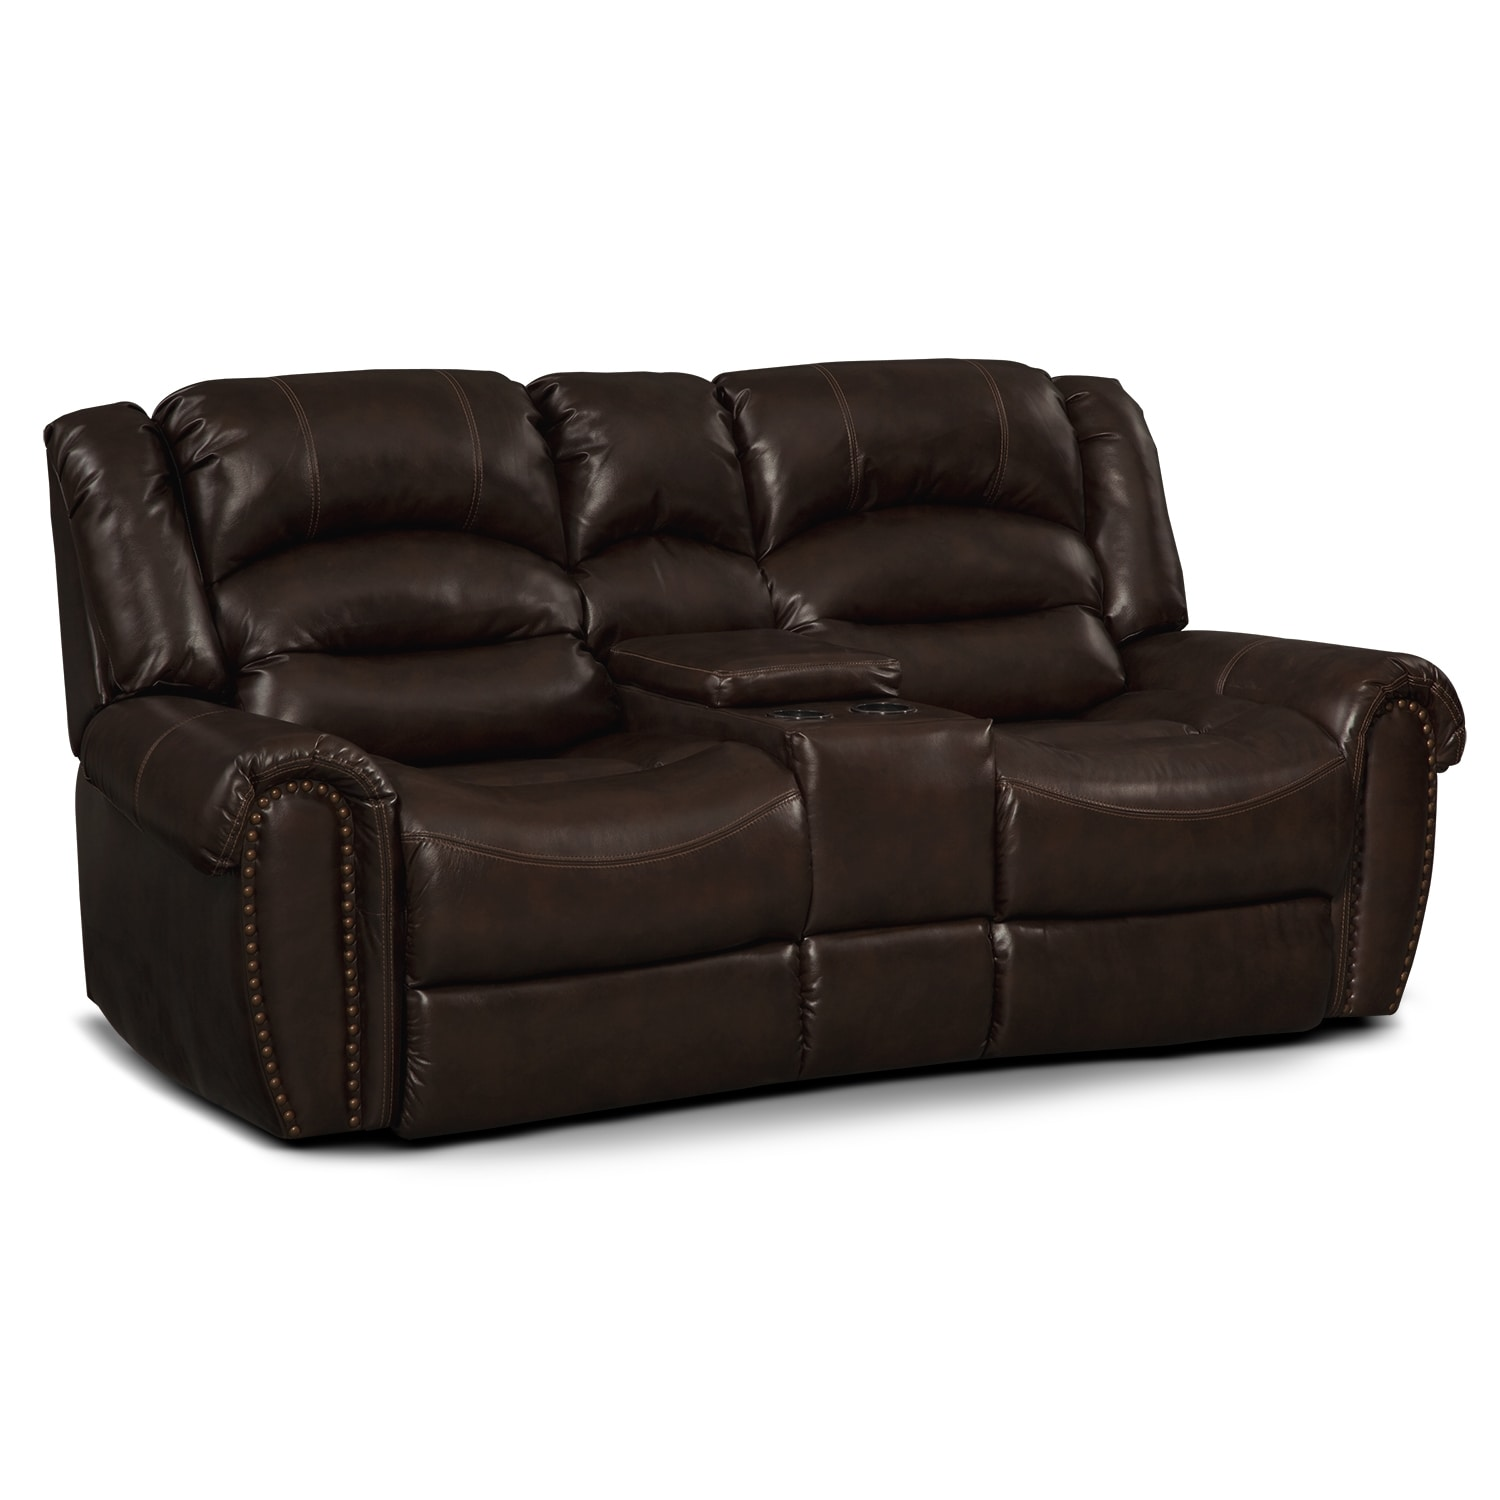 Galveston leather dual reclining loveseat value city furniture Leather reclining loveseat